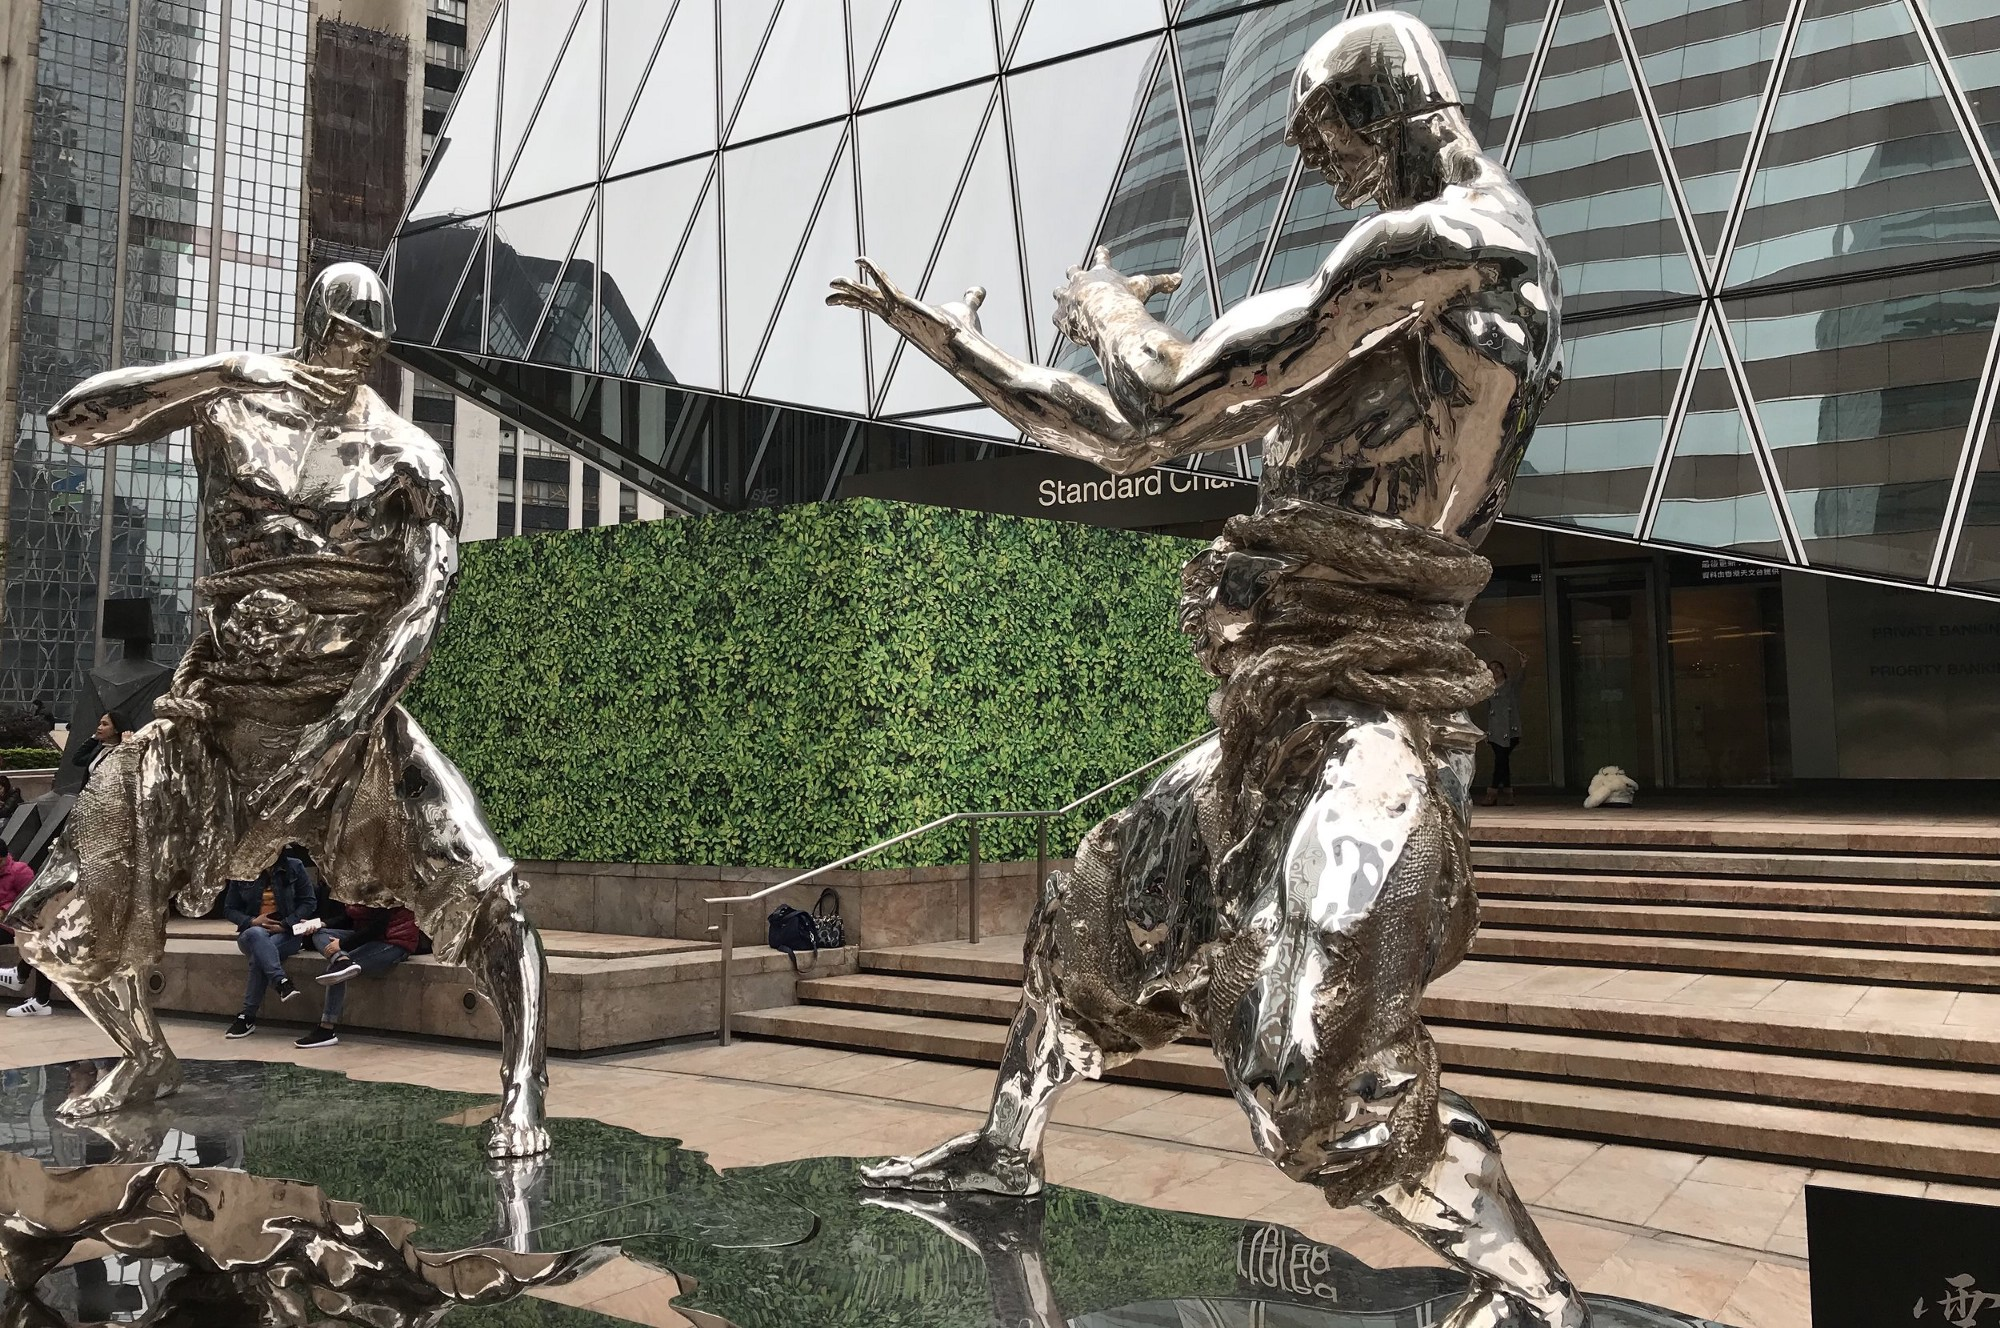 Pictured: Statues of two men in traditional martial arts poses facing one another, ready to fight. Photo taken in front of the Standard Chartered building, Forum, Hong Kong, Central.